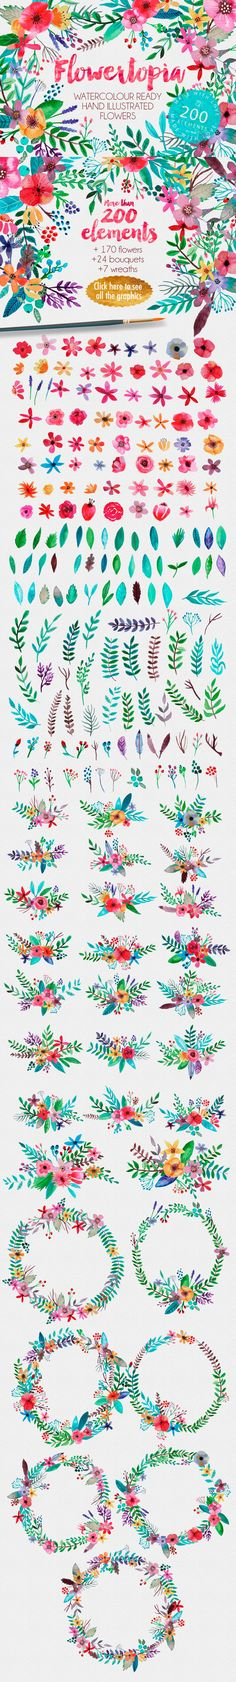 these are good colors, maybe just a little too strong, though. clip art feminine watercolor flowers floral hand illustrations